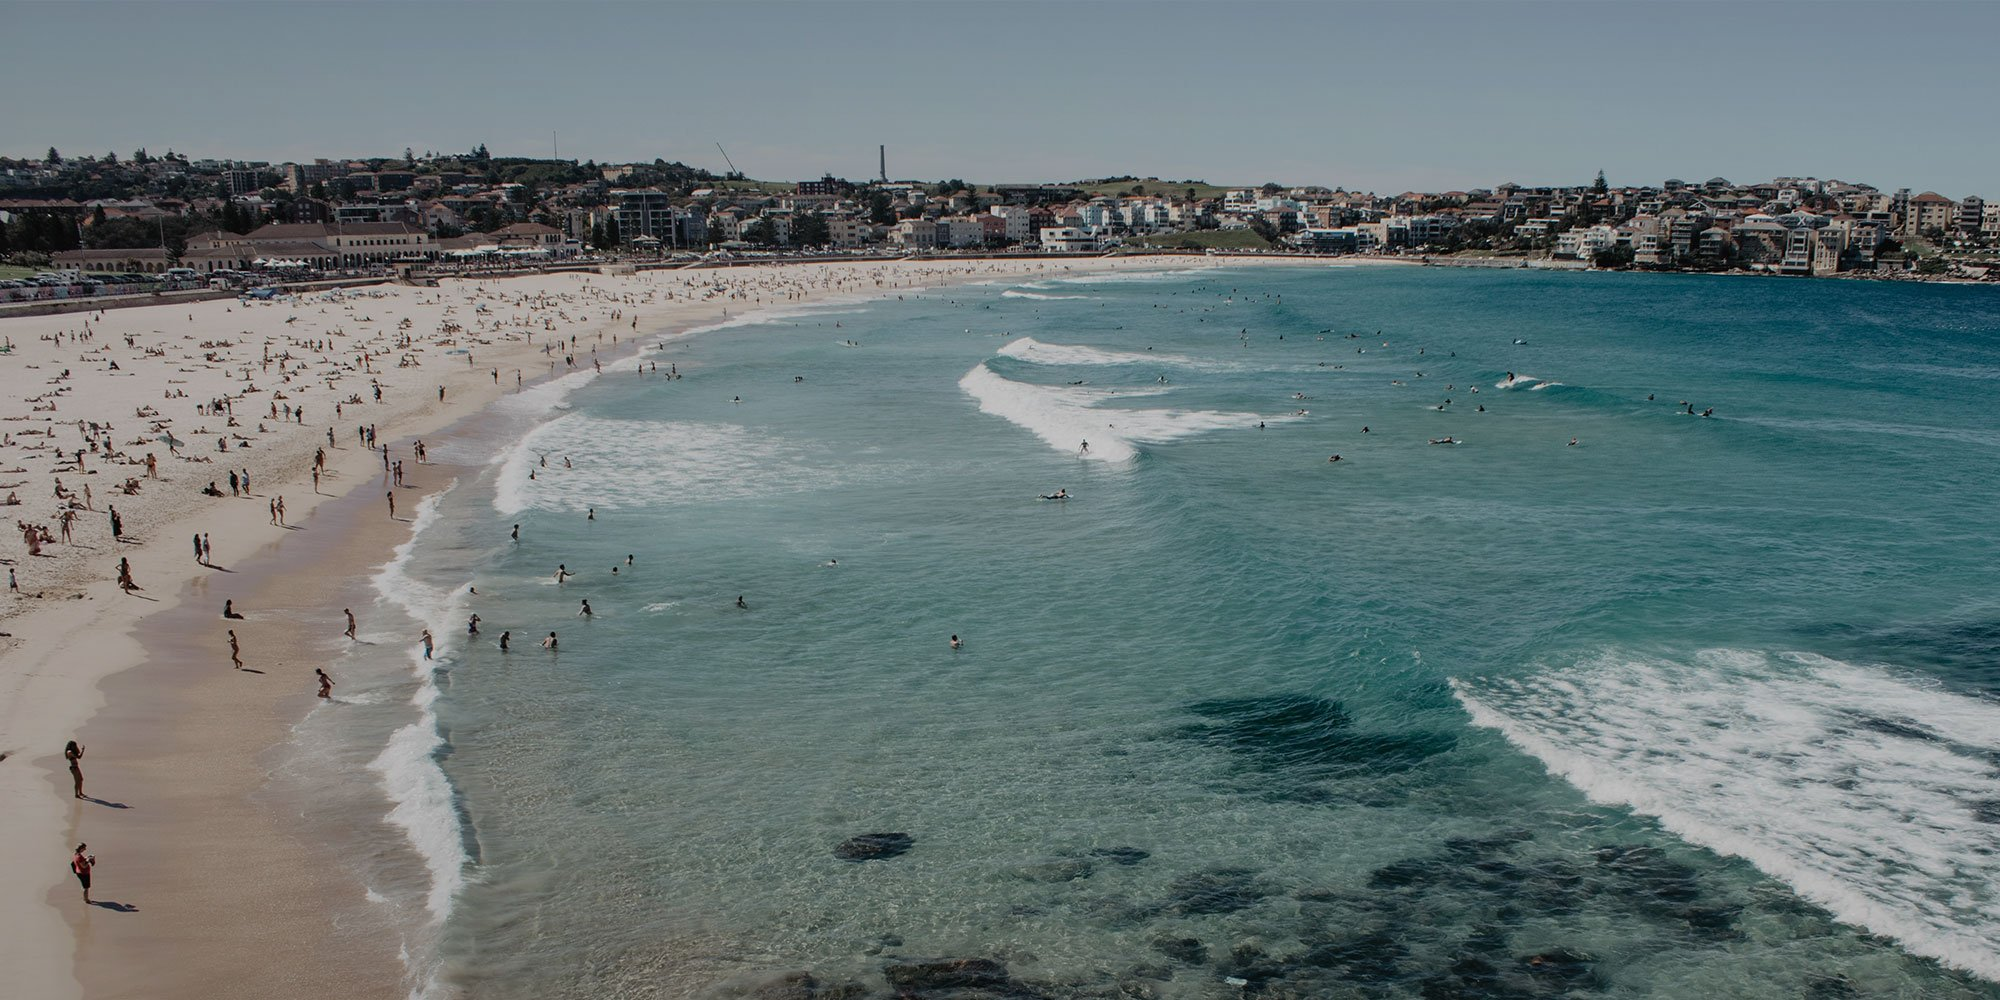 Crowds on Bondi beach in Sydney Australia, a great city to learn English